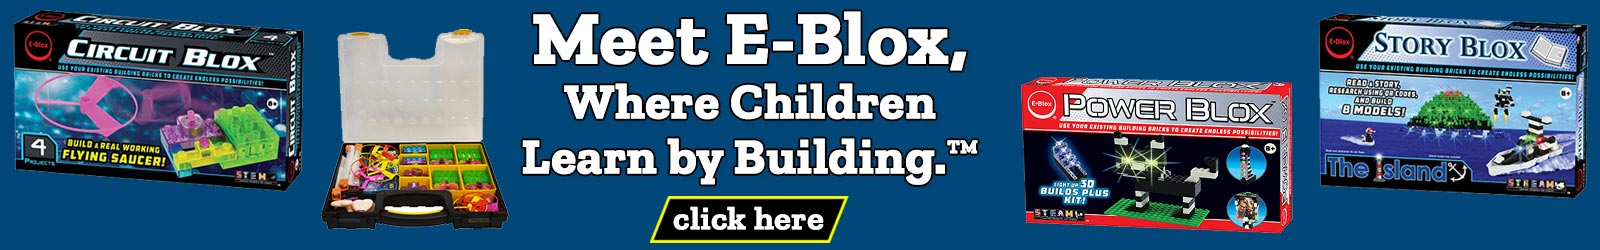 Meet E-Blox where children learn by building.